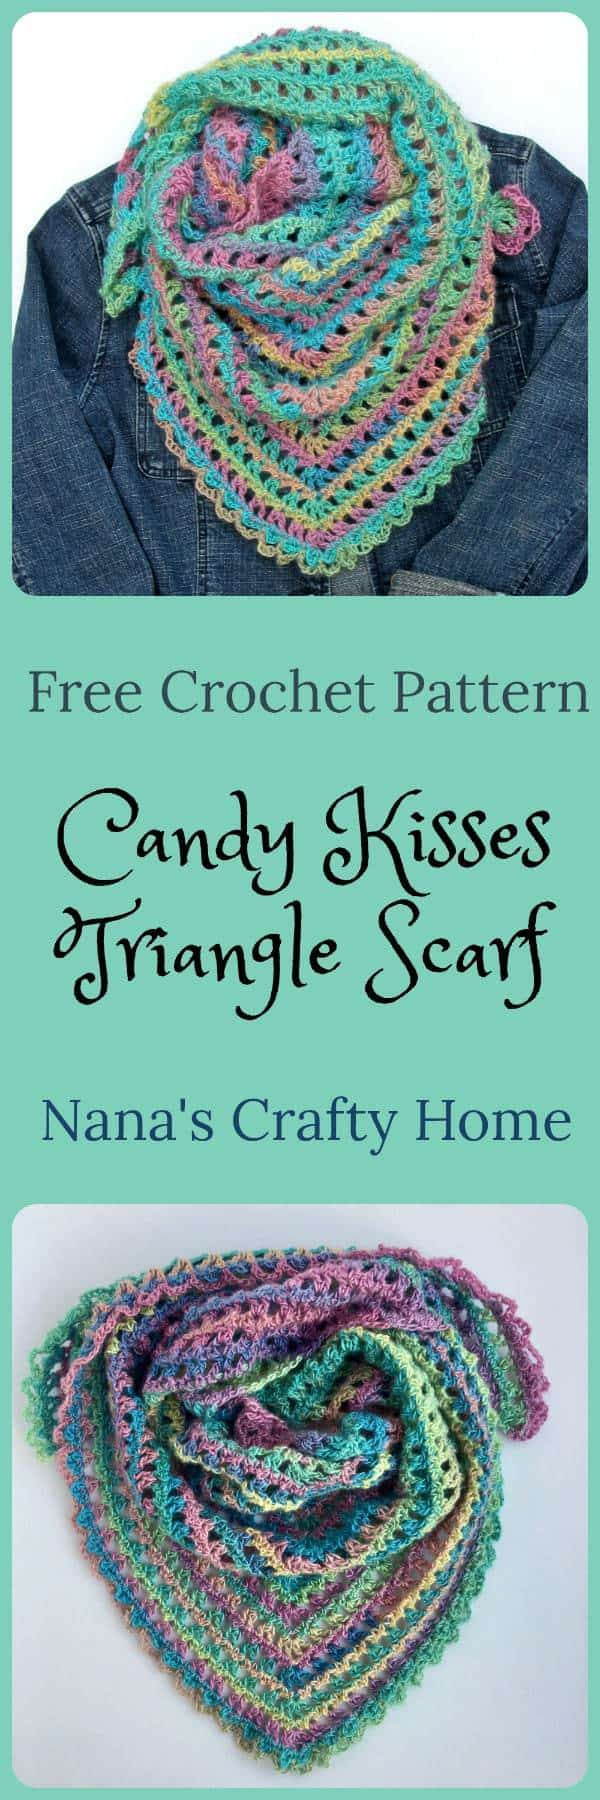 Candy Kisses Triangle Scarf Free Crochet Pattern featuring Red Heart Unforgettable